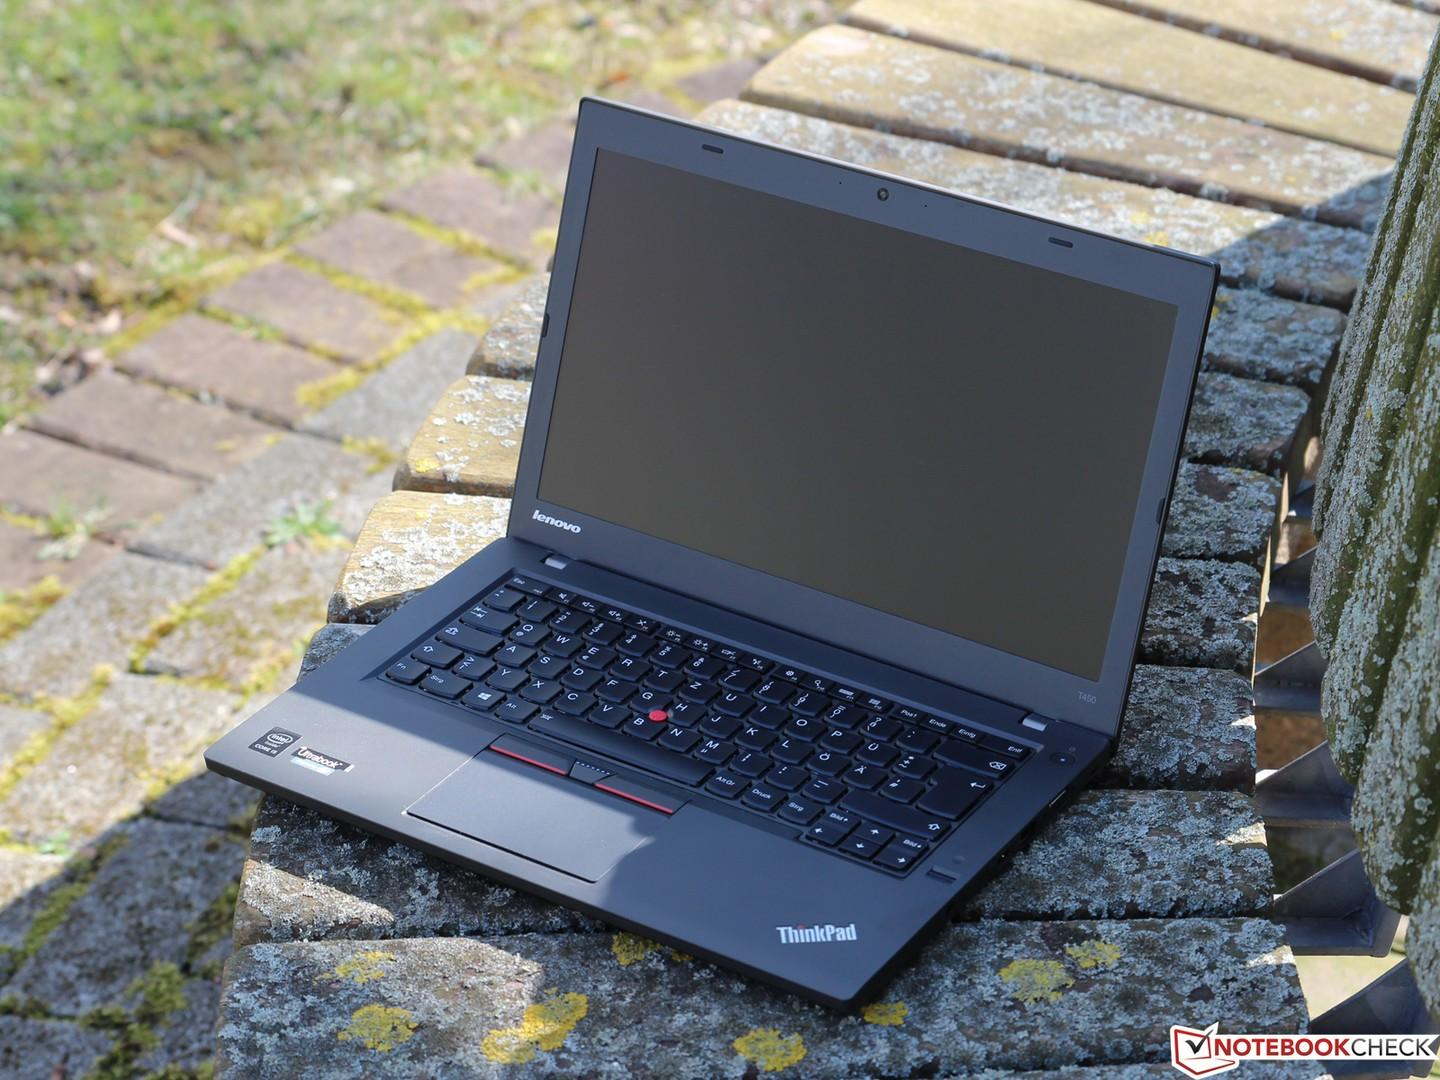 Lenovo ThinkPad T450 14 inch Windows 8.1 Pro